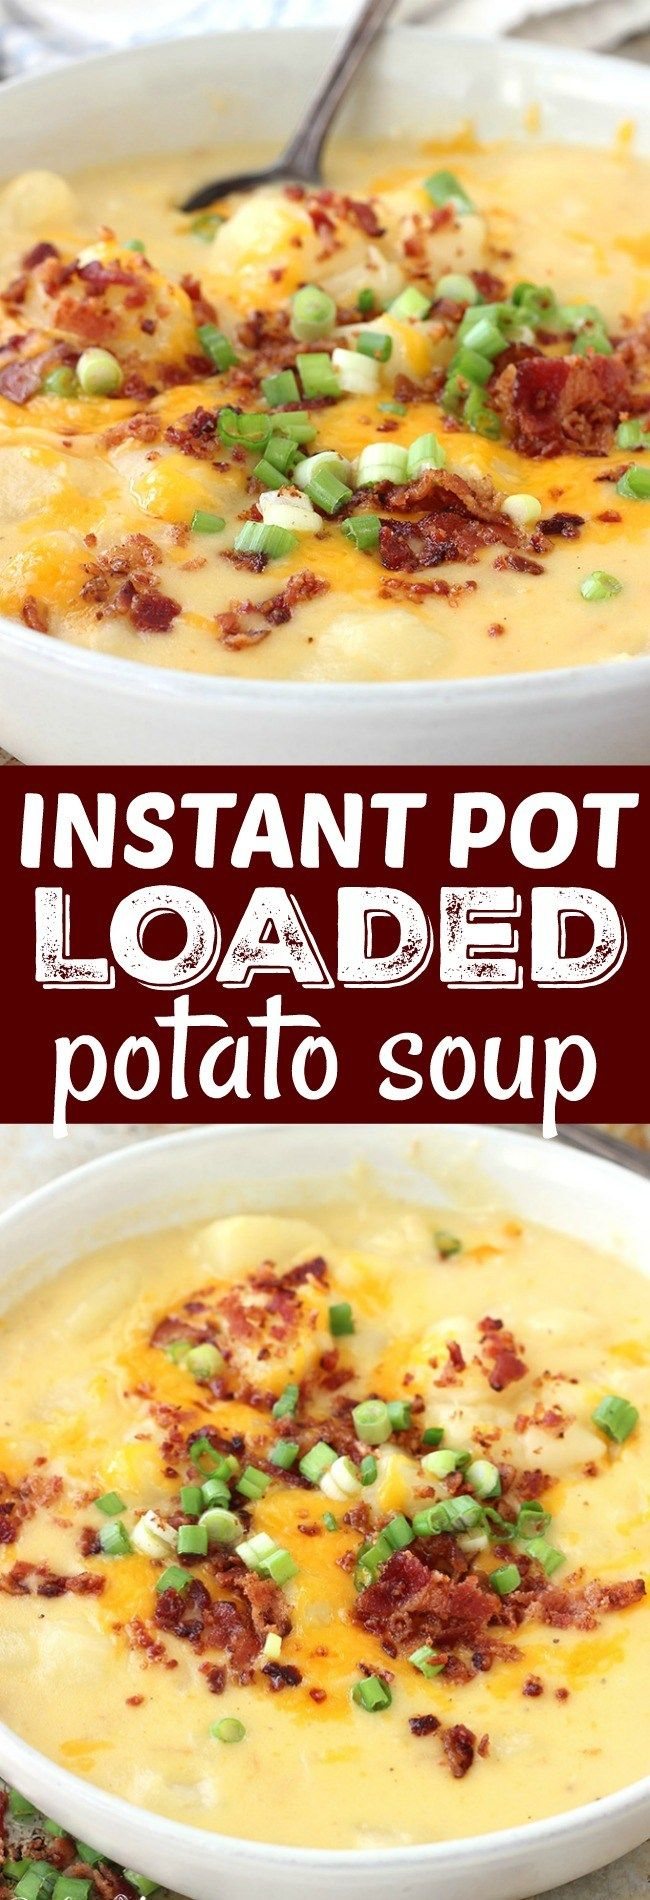 Photo of Instant Pot Loaded Potato Soup